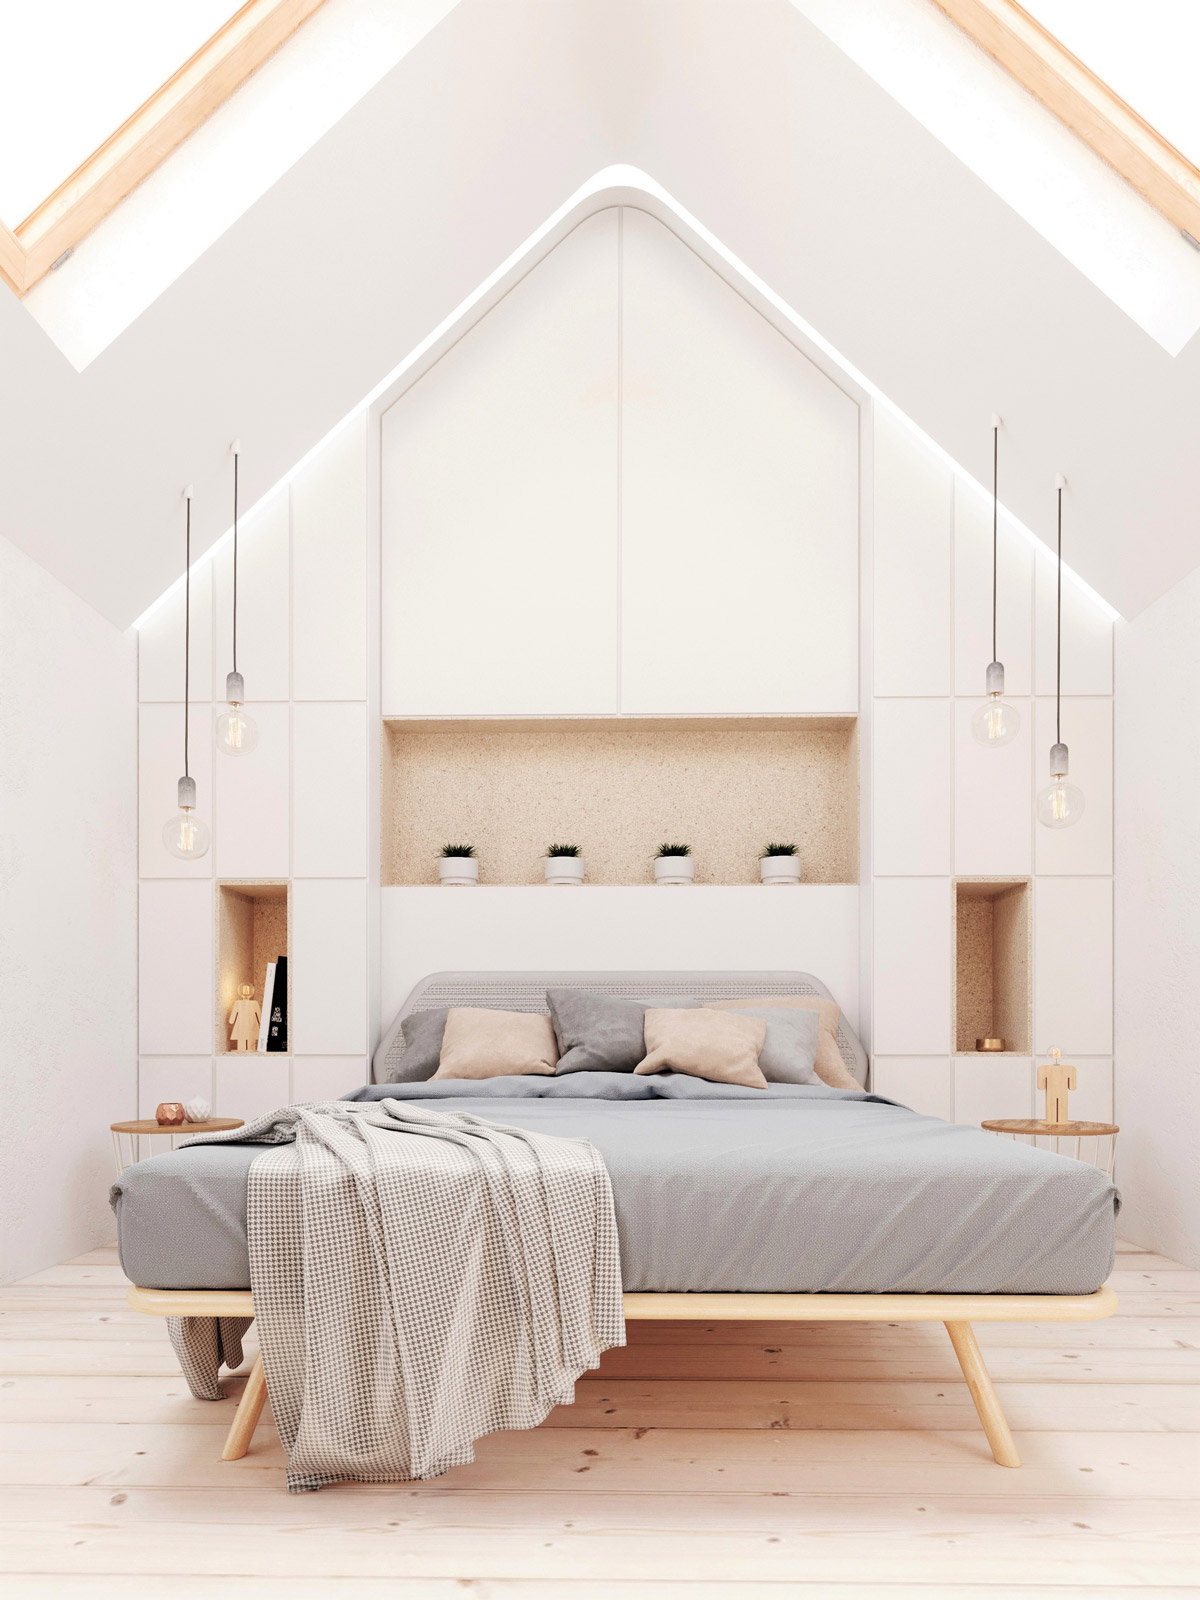 Beautiful Minimalism Isnu0027t Going Anywhere Anytime Soon. The Best Thing To Do Is  Embrace It. However, The Clean White Walls, The Simple Furniture And The  Decluttering ...